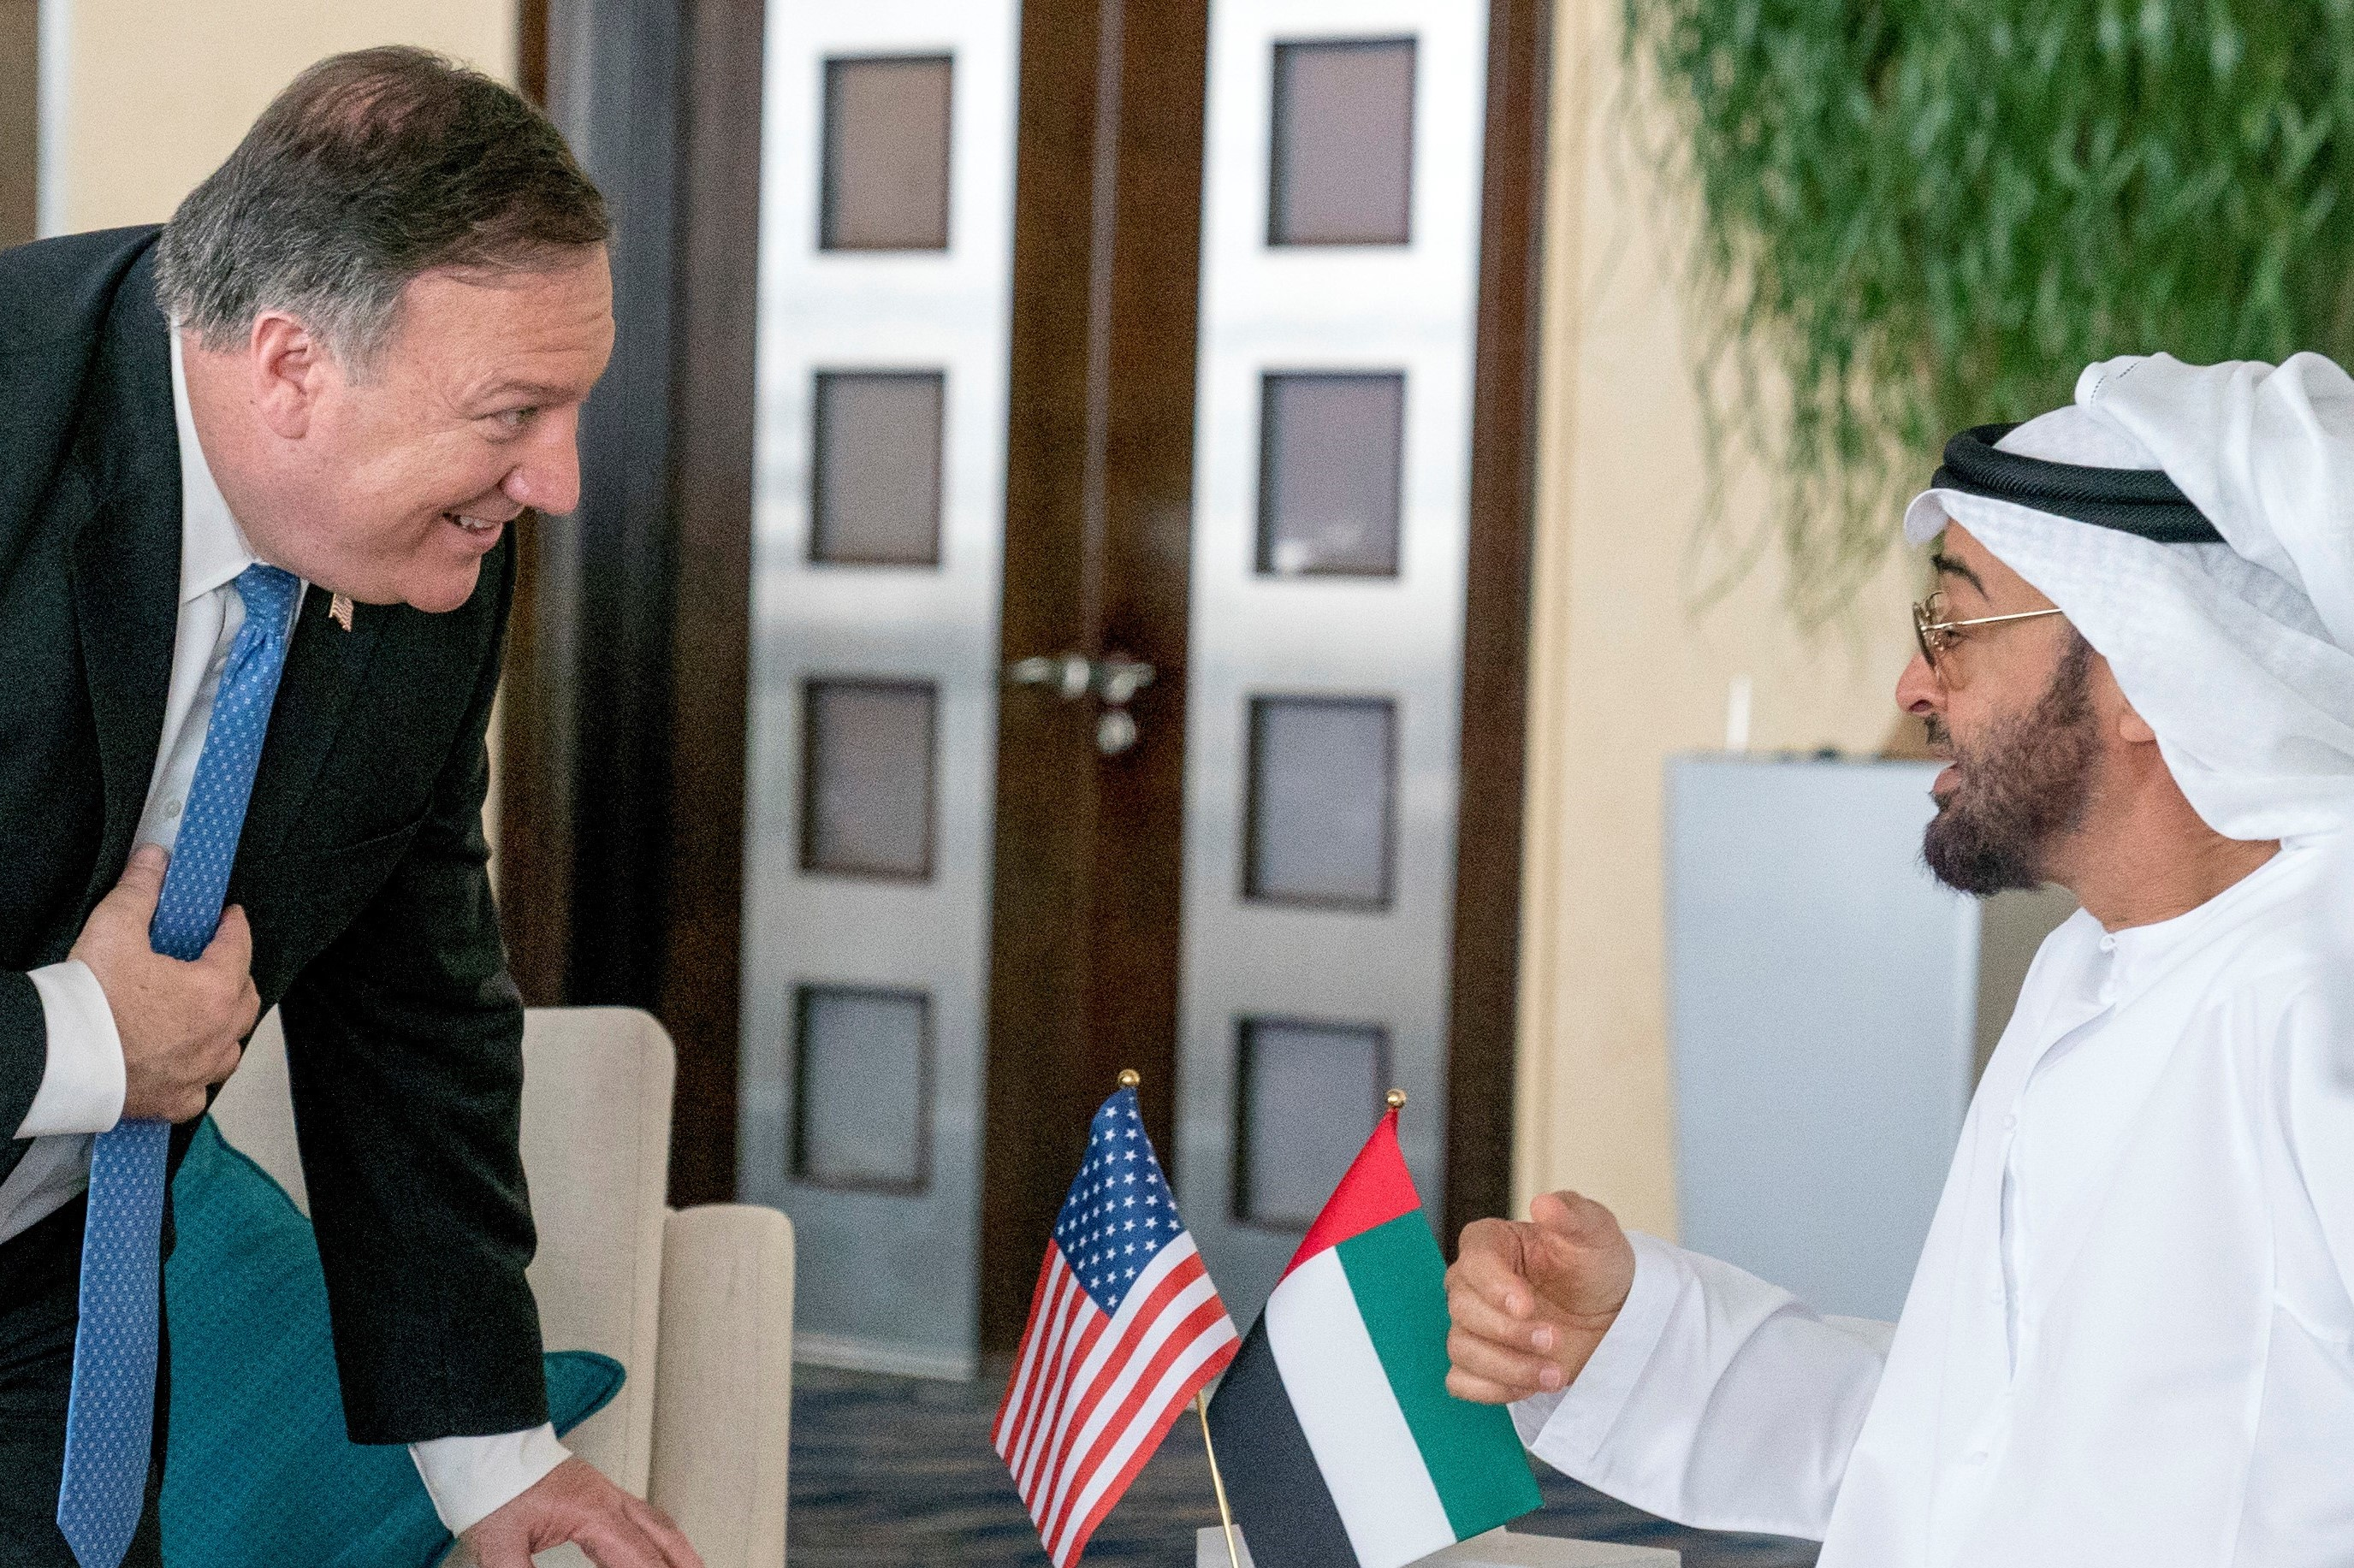 U.S. Secretary of State Mike Pompeo and Abu Dhabi's Crown Prince Sheikh Mohammed bin Zayed al-Nahyan meet at the Al Shati Palace in Abu Dhabi, United Arab Emirates, July 10, 2018